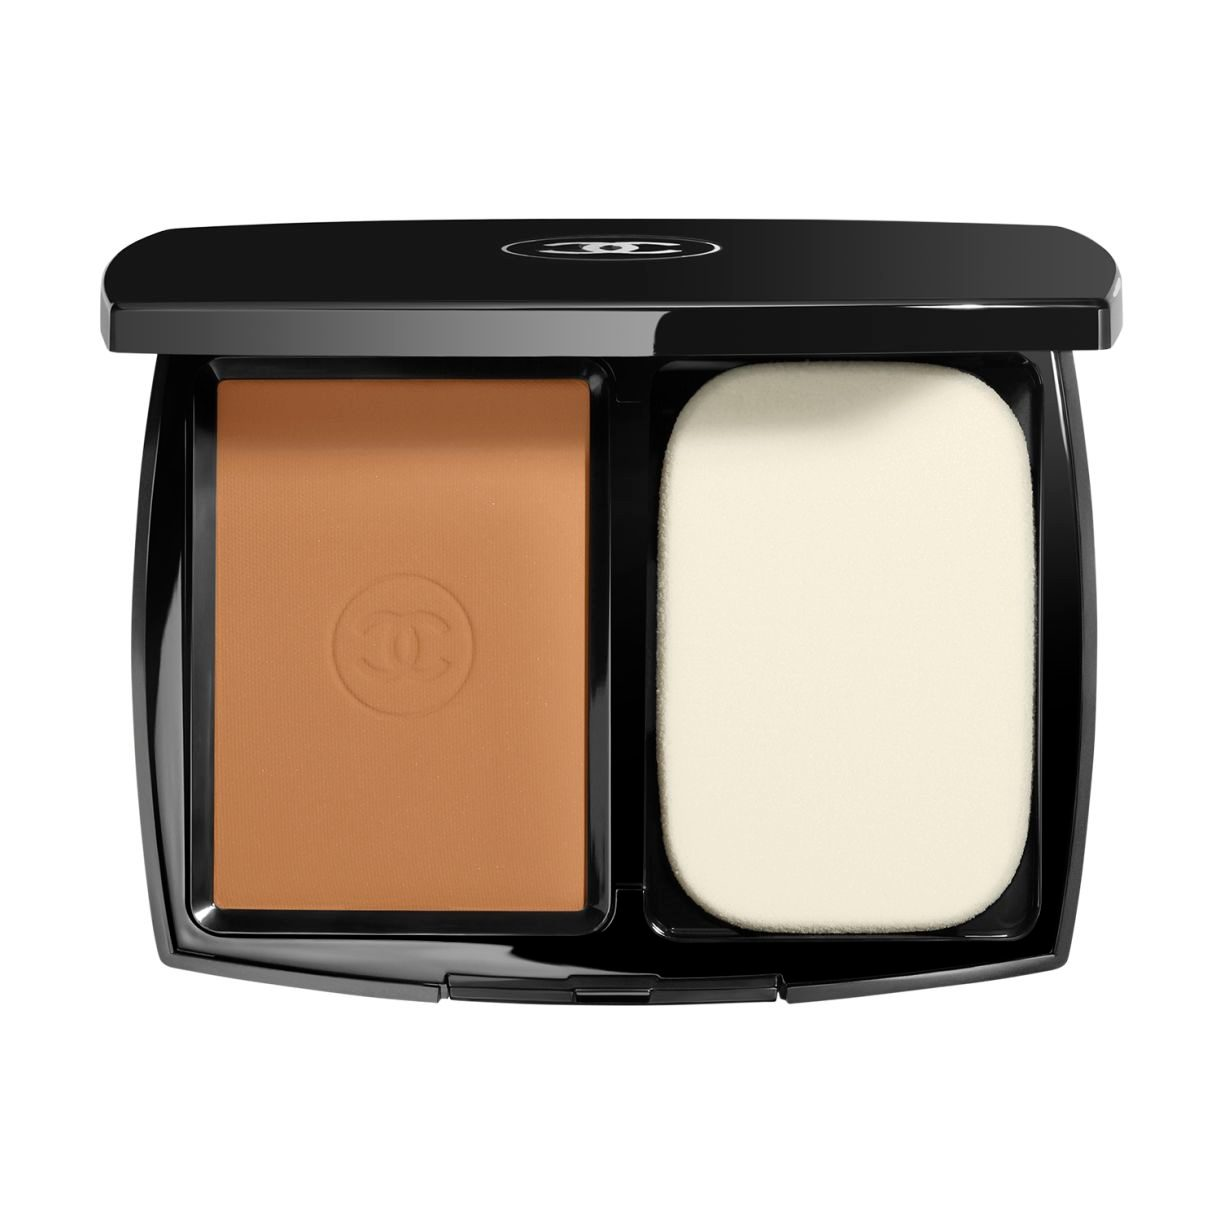 LE TEINT ULTRA TENUE ULTRAWEAR FLAWLESS COMPACT FOUNDATION BROAD SPECTRUM SPF 15 SUNSCREEN 121 CARAMEL 13G